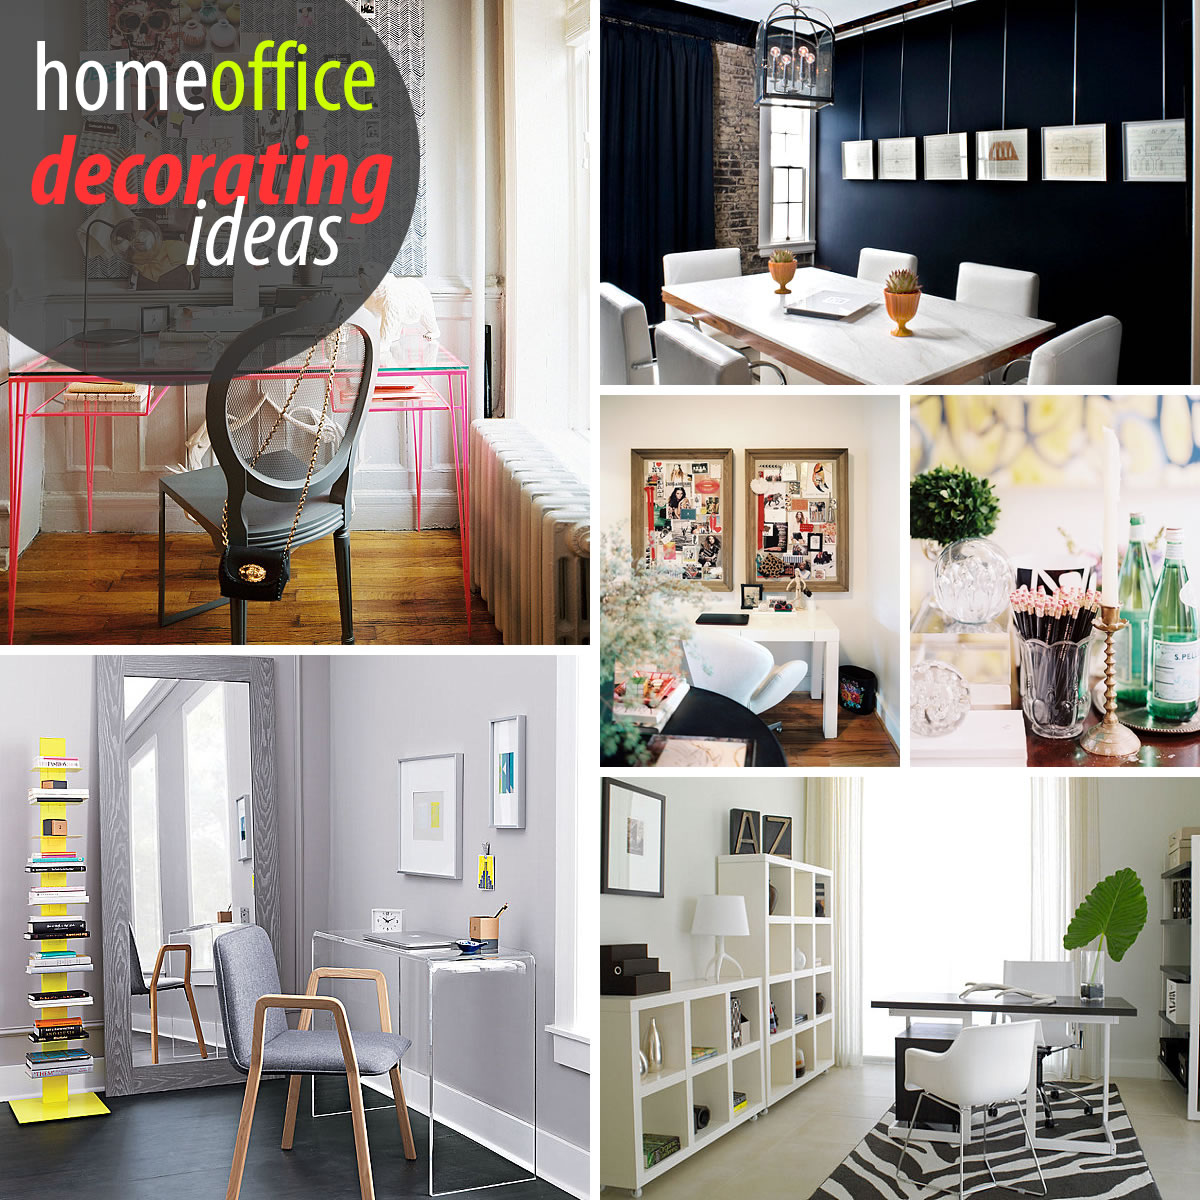 Creative Ideas Home Office Furniture home office furniture layout ideas for good home office furniture layout wm homes creative Creative Home Office Decorating Ideas